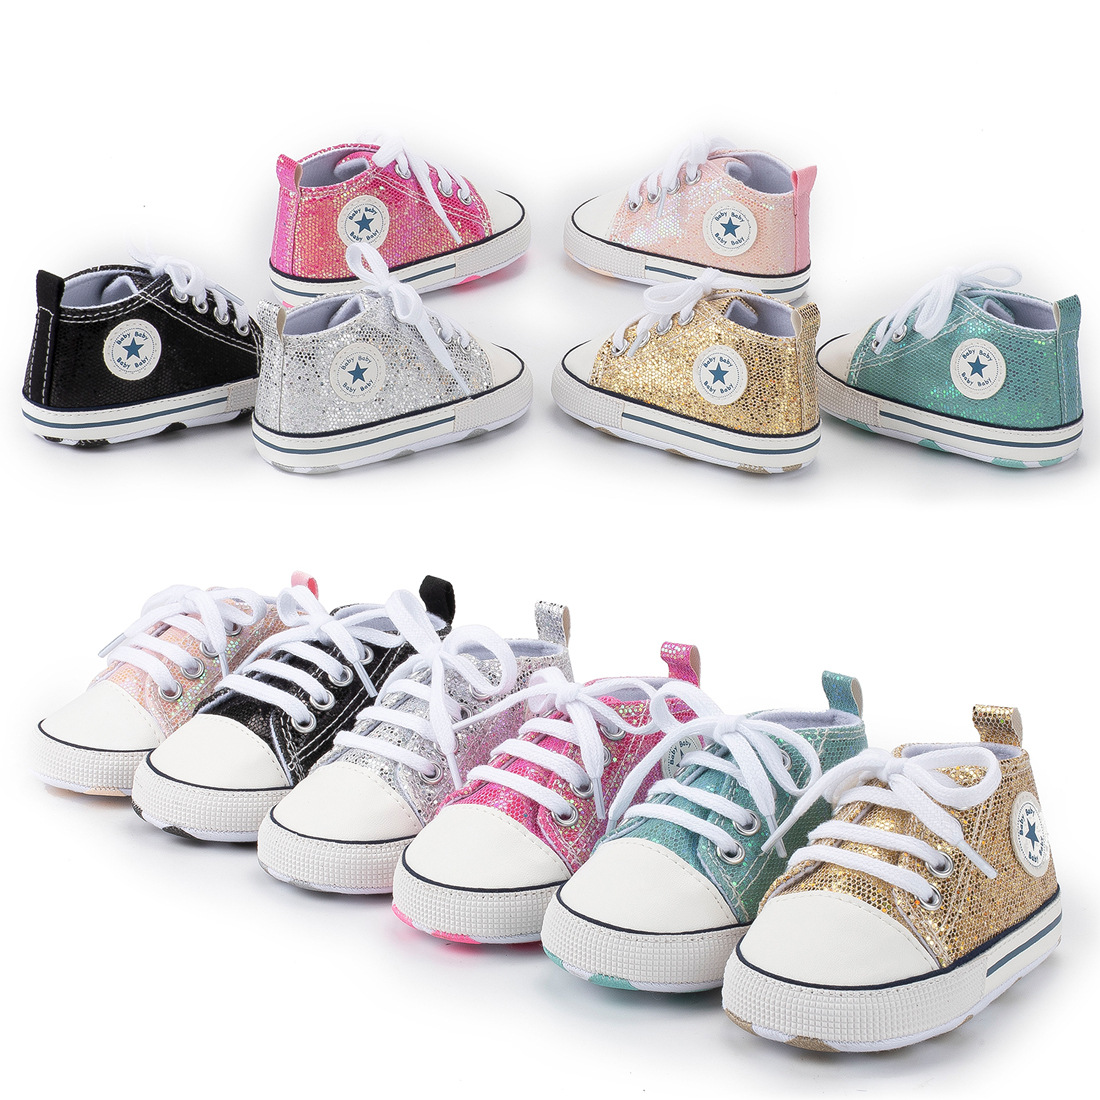 New Canvas Classic Sports Shoes Newborn Baby Boys Girls First Walkers Shoes Infant Toddler Soft Sole Anti-slip Baby Shoes Winter